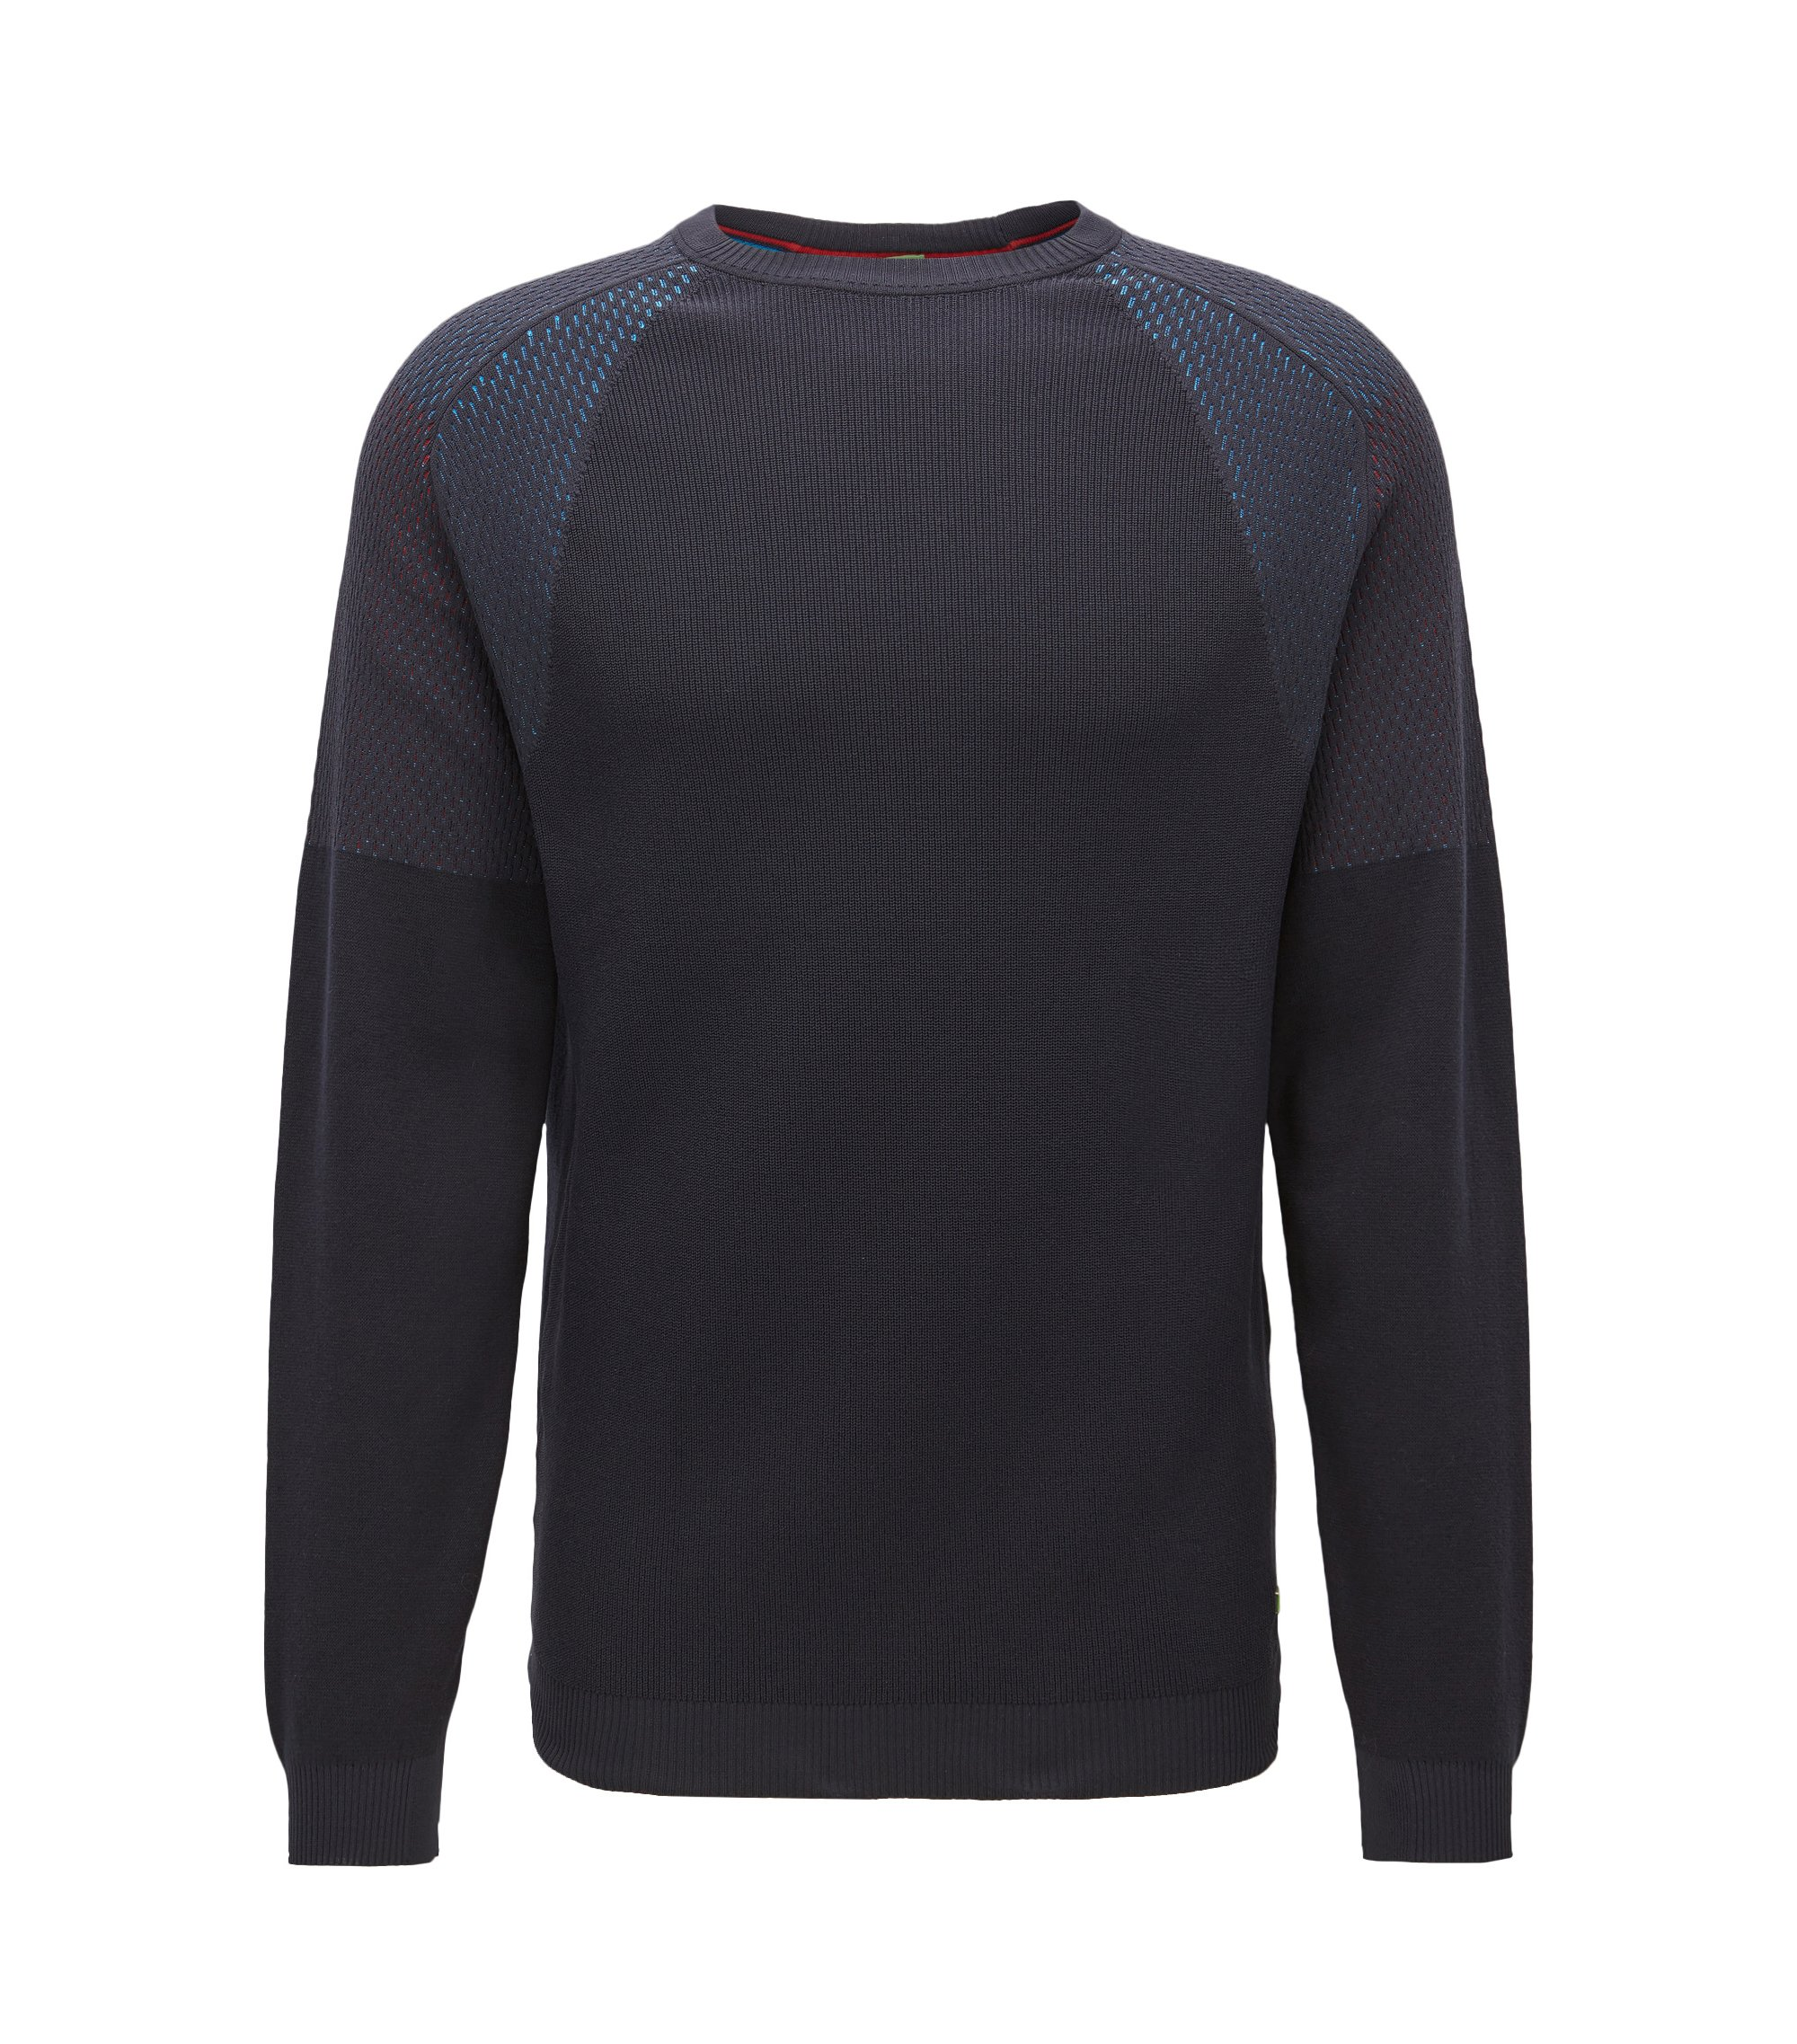 Crew-neck sweater in mixed structures, Black